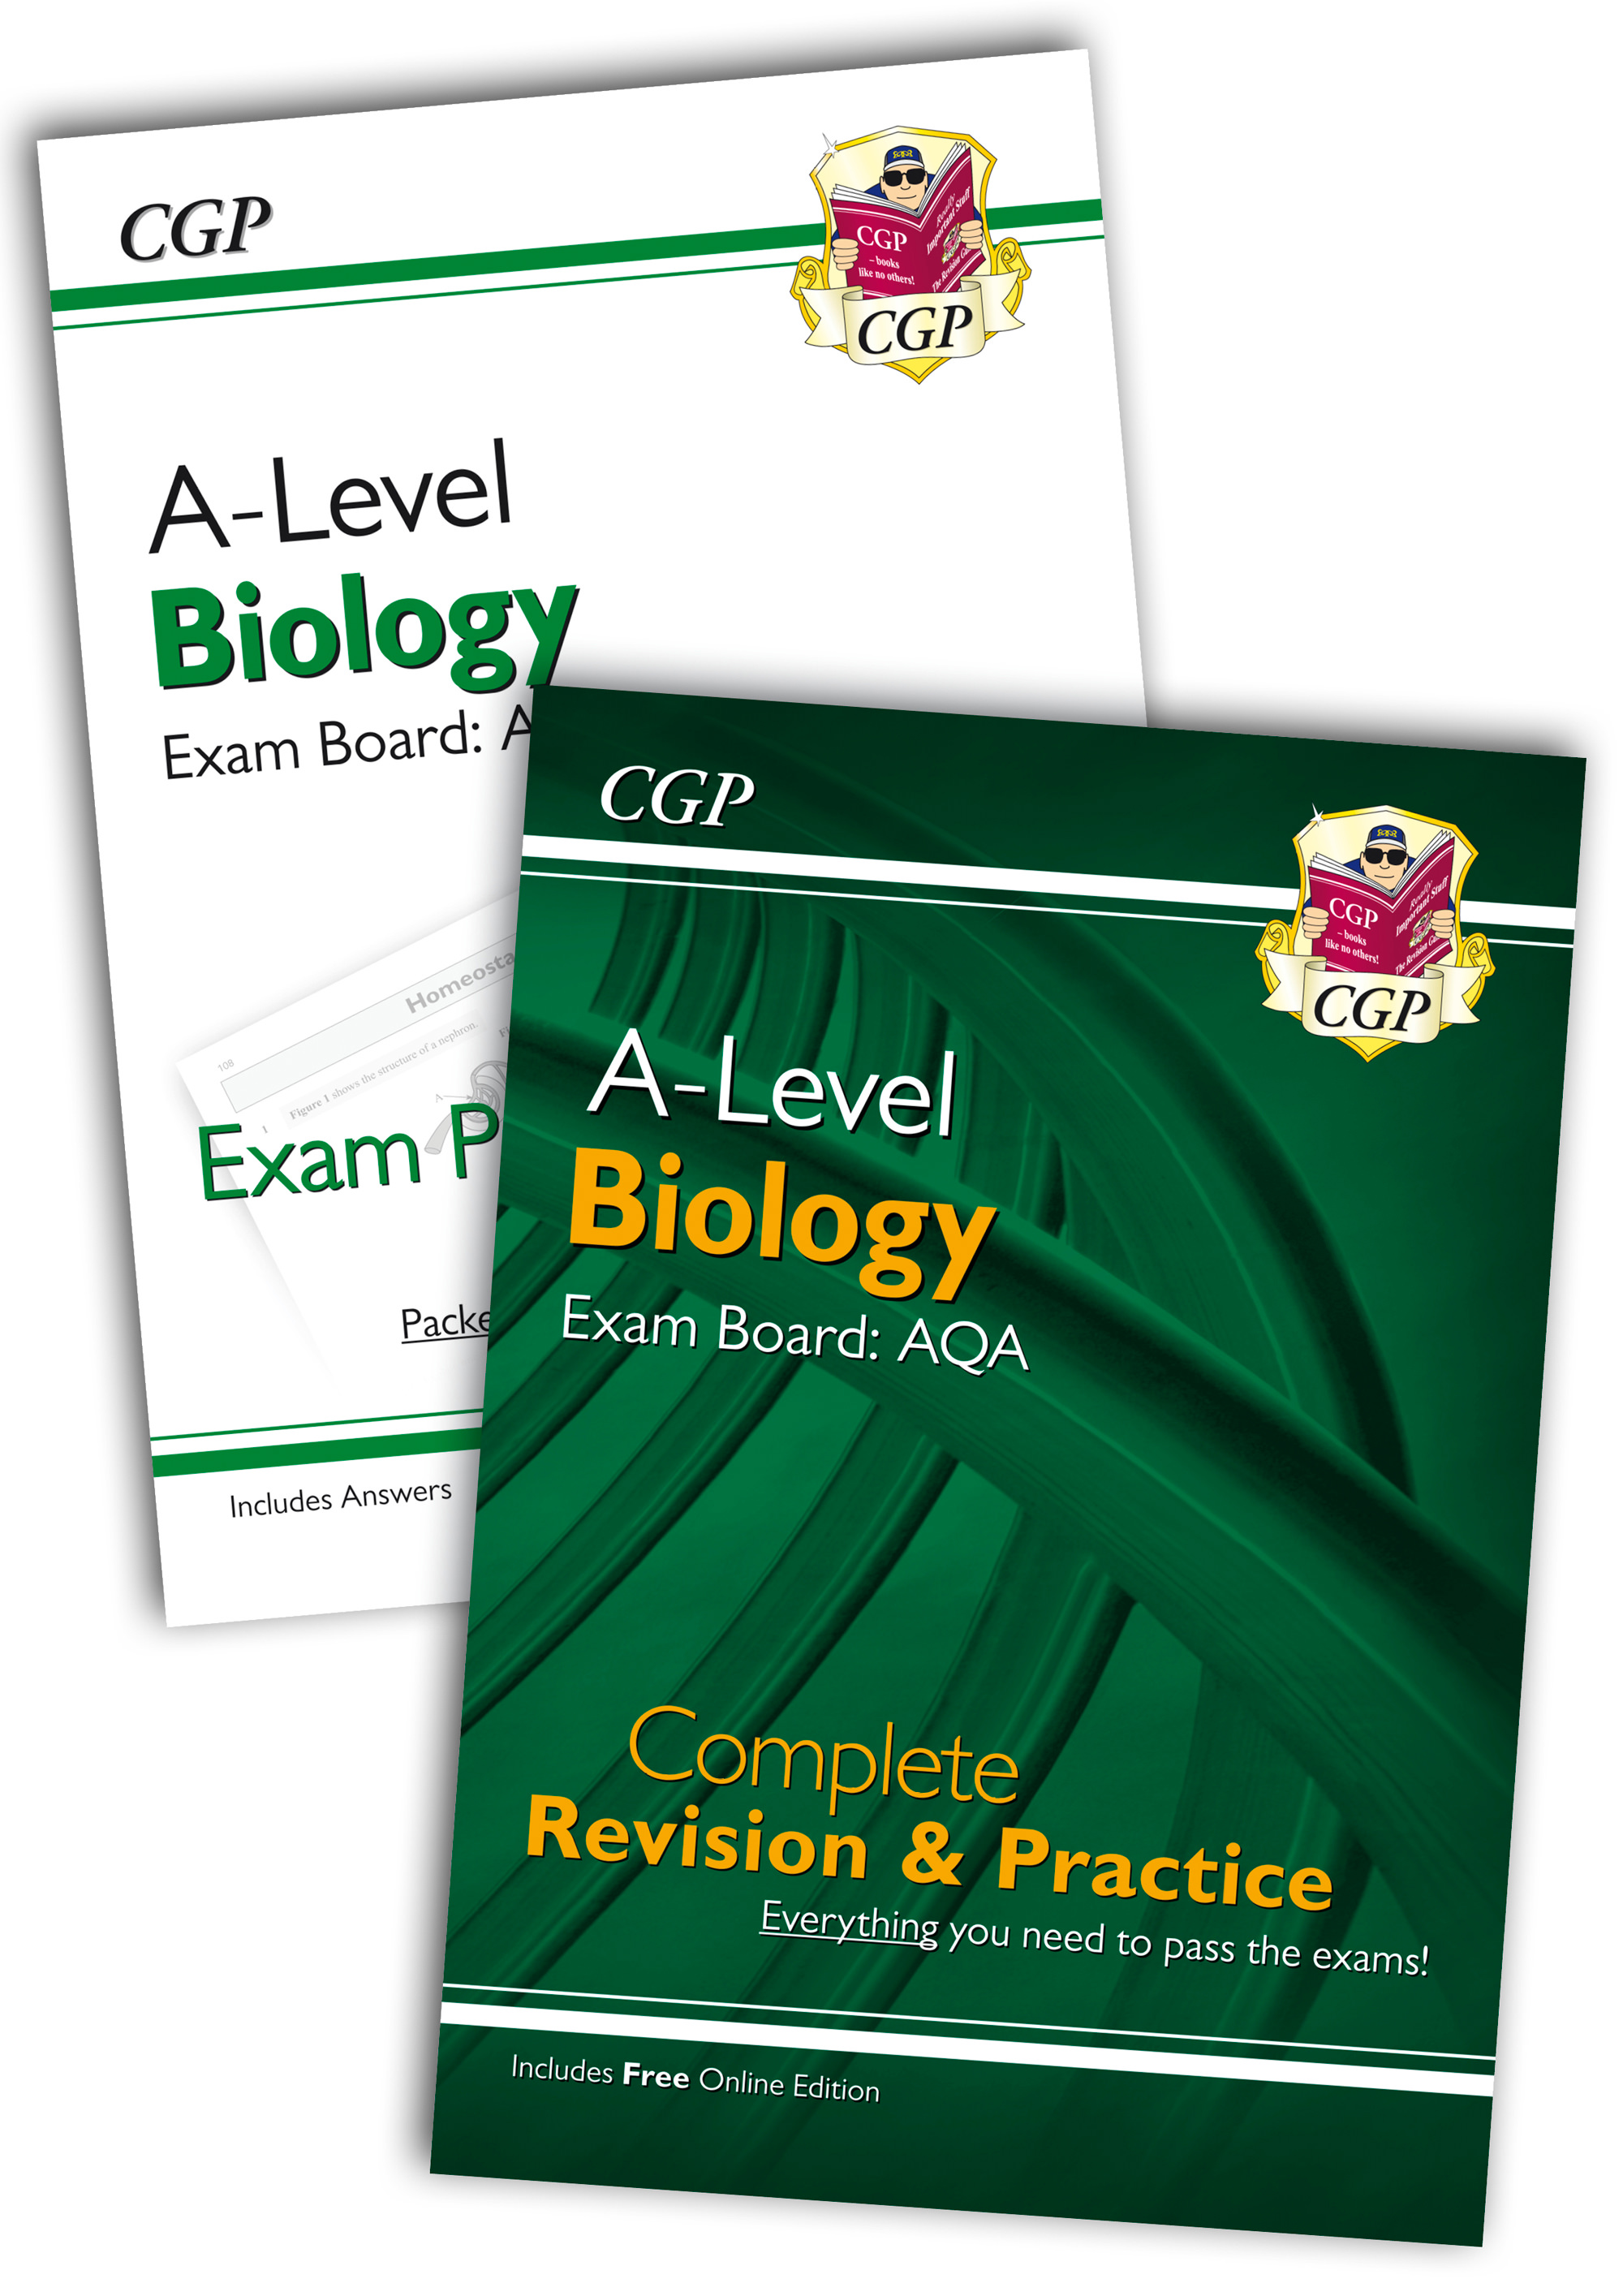 BARQB71 - Complete Revision and Exam Practice A-Level Biology Bundle: AQA Year 1 & 2